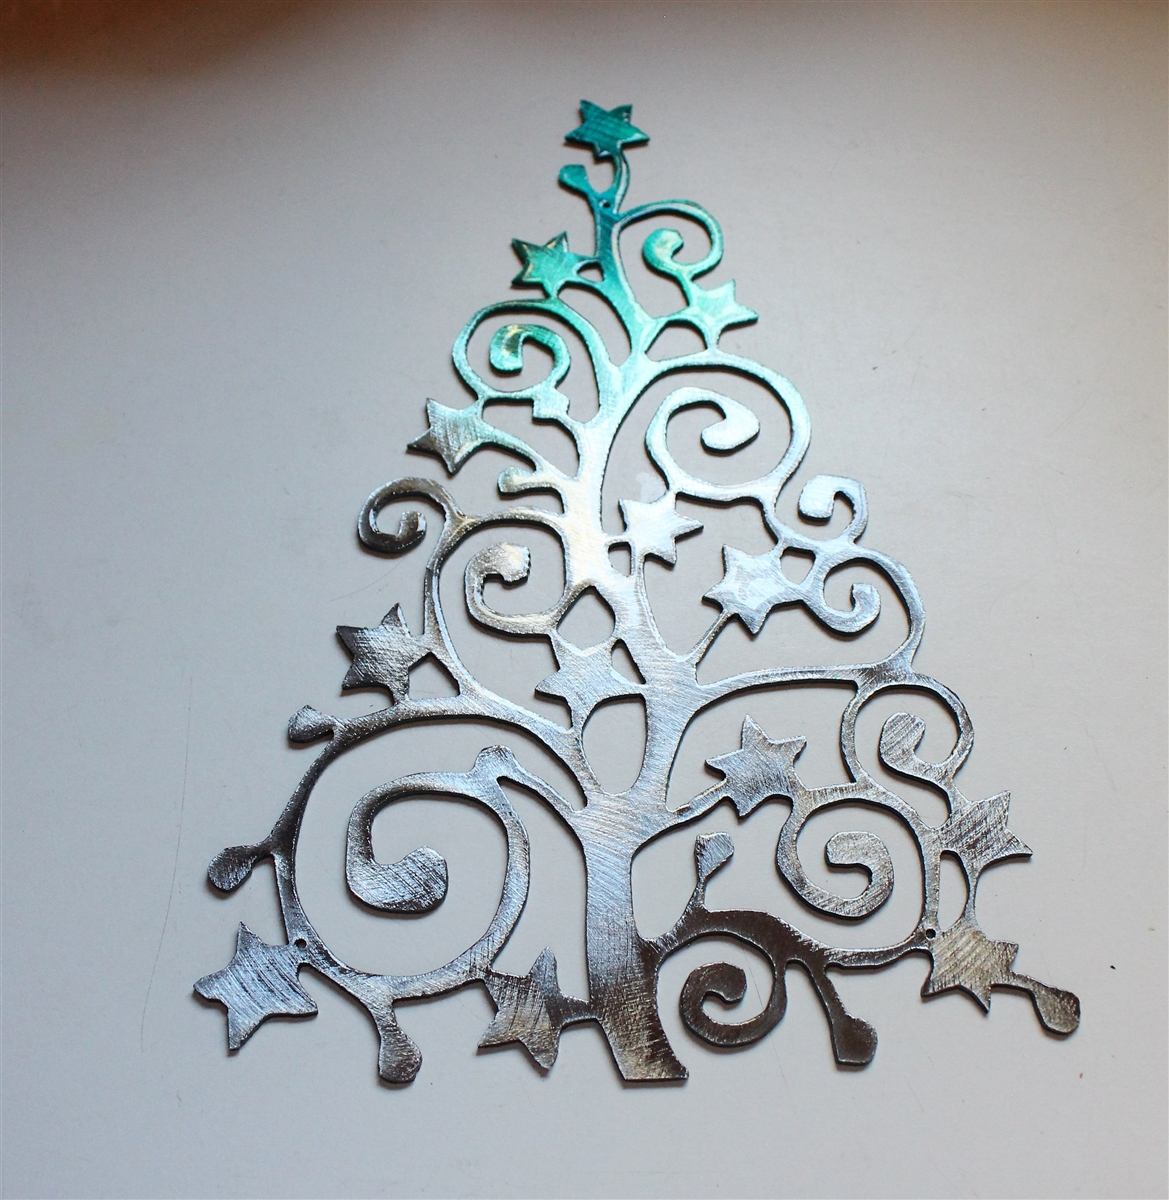 Teal Metal Wall Art Swirlystartree32